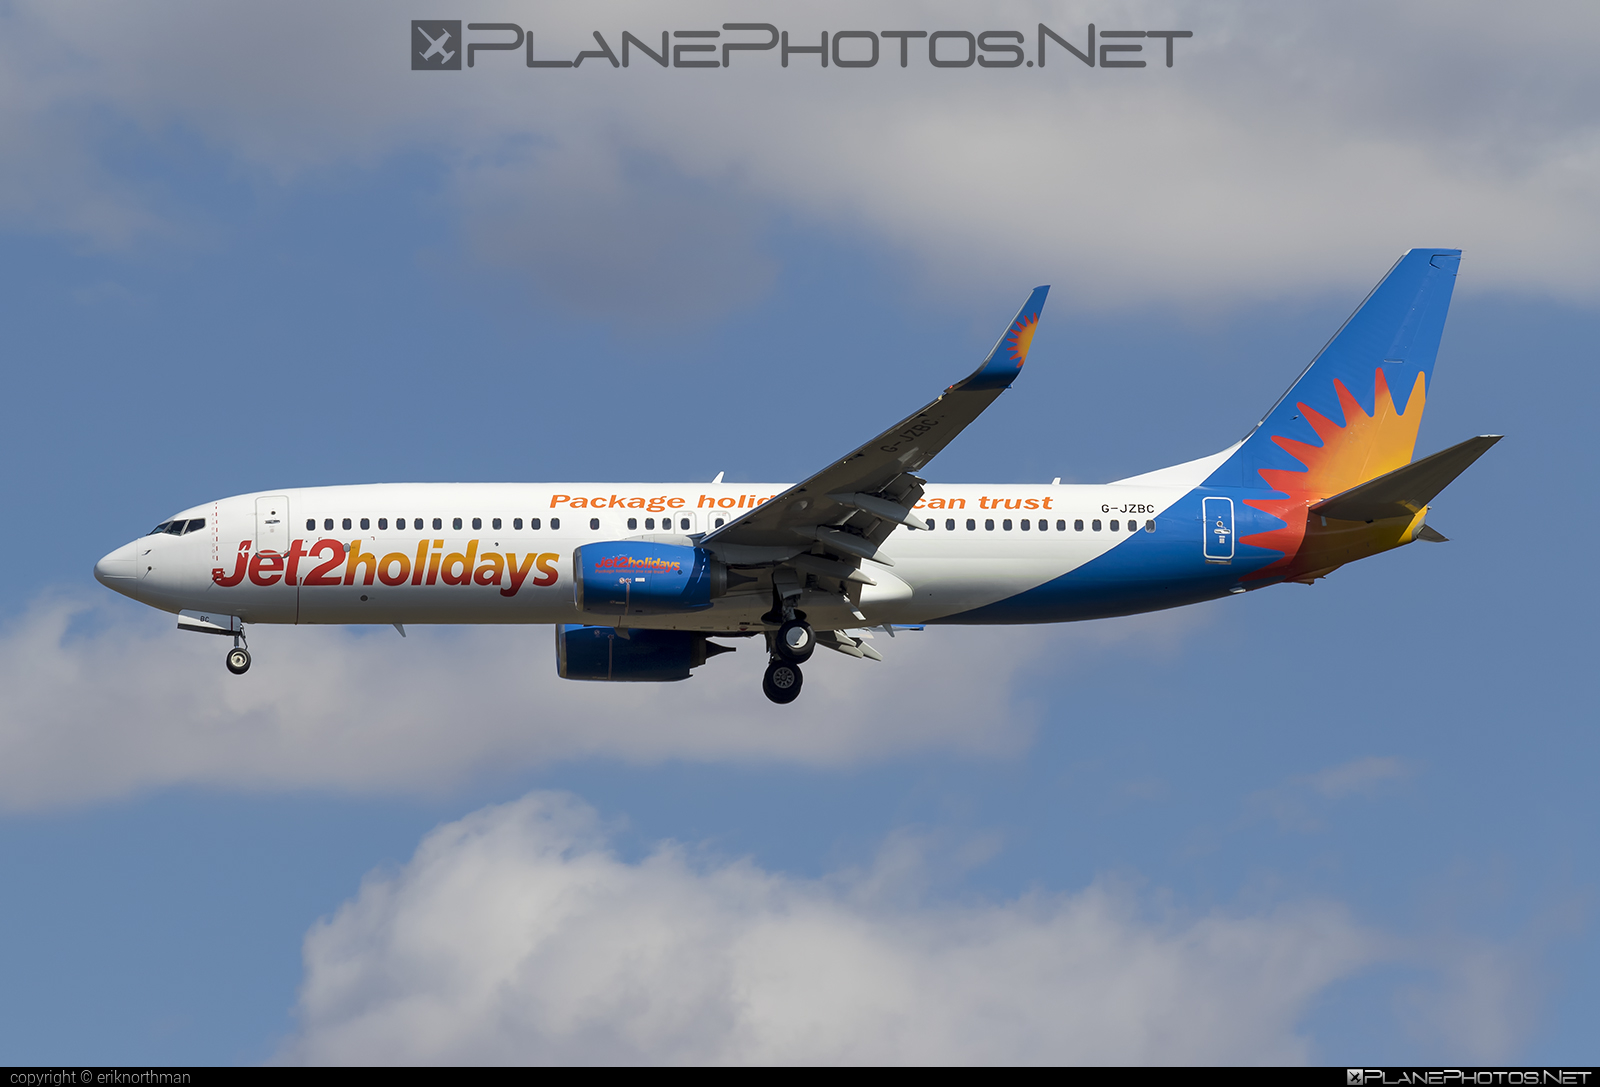 Boeing 737-800 - G-JZBC operated by Jet2holidays #b737 #b737nextgen #b737ng #boeing #boeing737 #jet2holidays